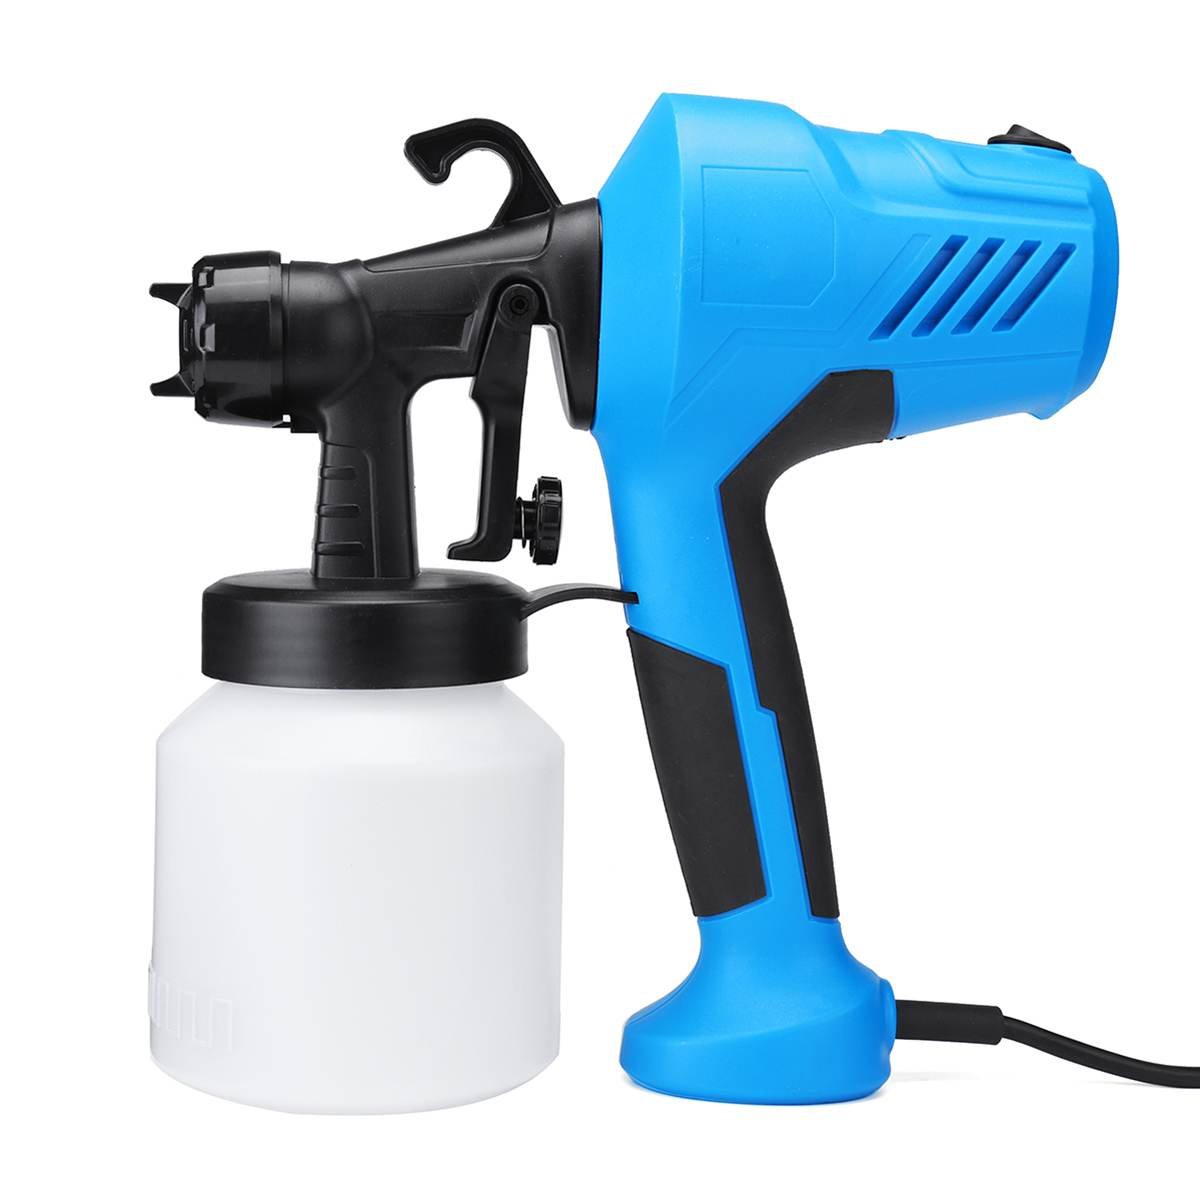 350W Power Electric Spray Gun, Electric HVLP Paint Sprayer Airless, 2 5mm  Nozzle Easy Spraying and Clean Perfect For Home DIY